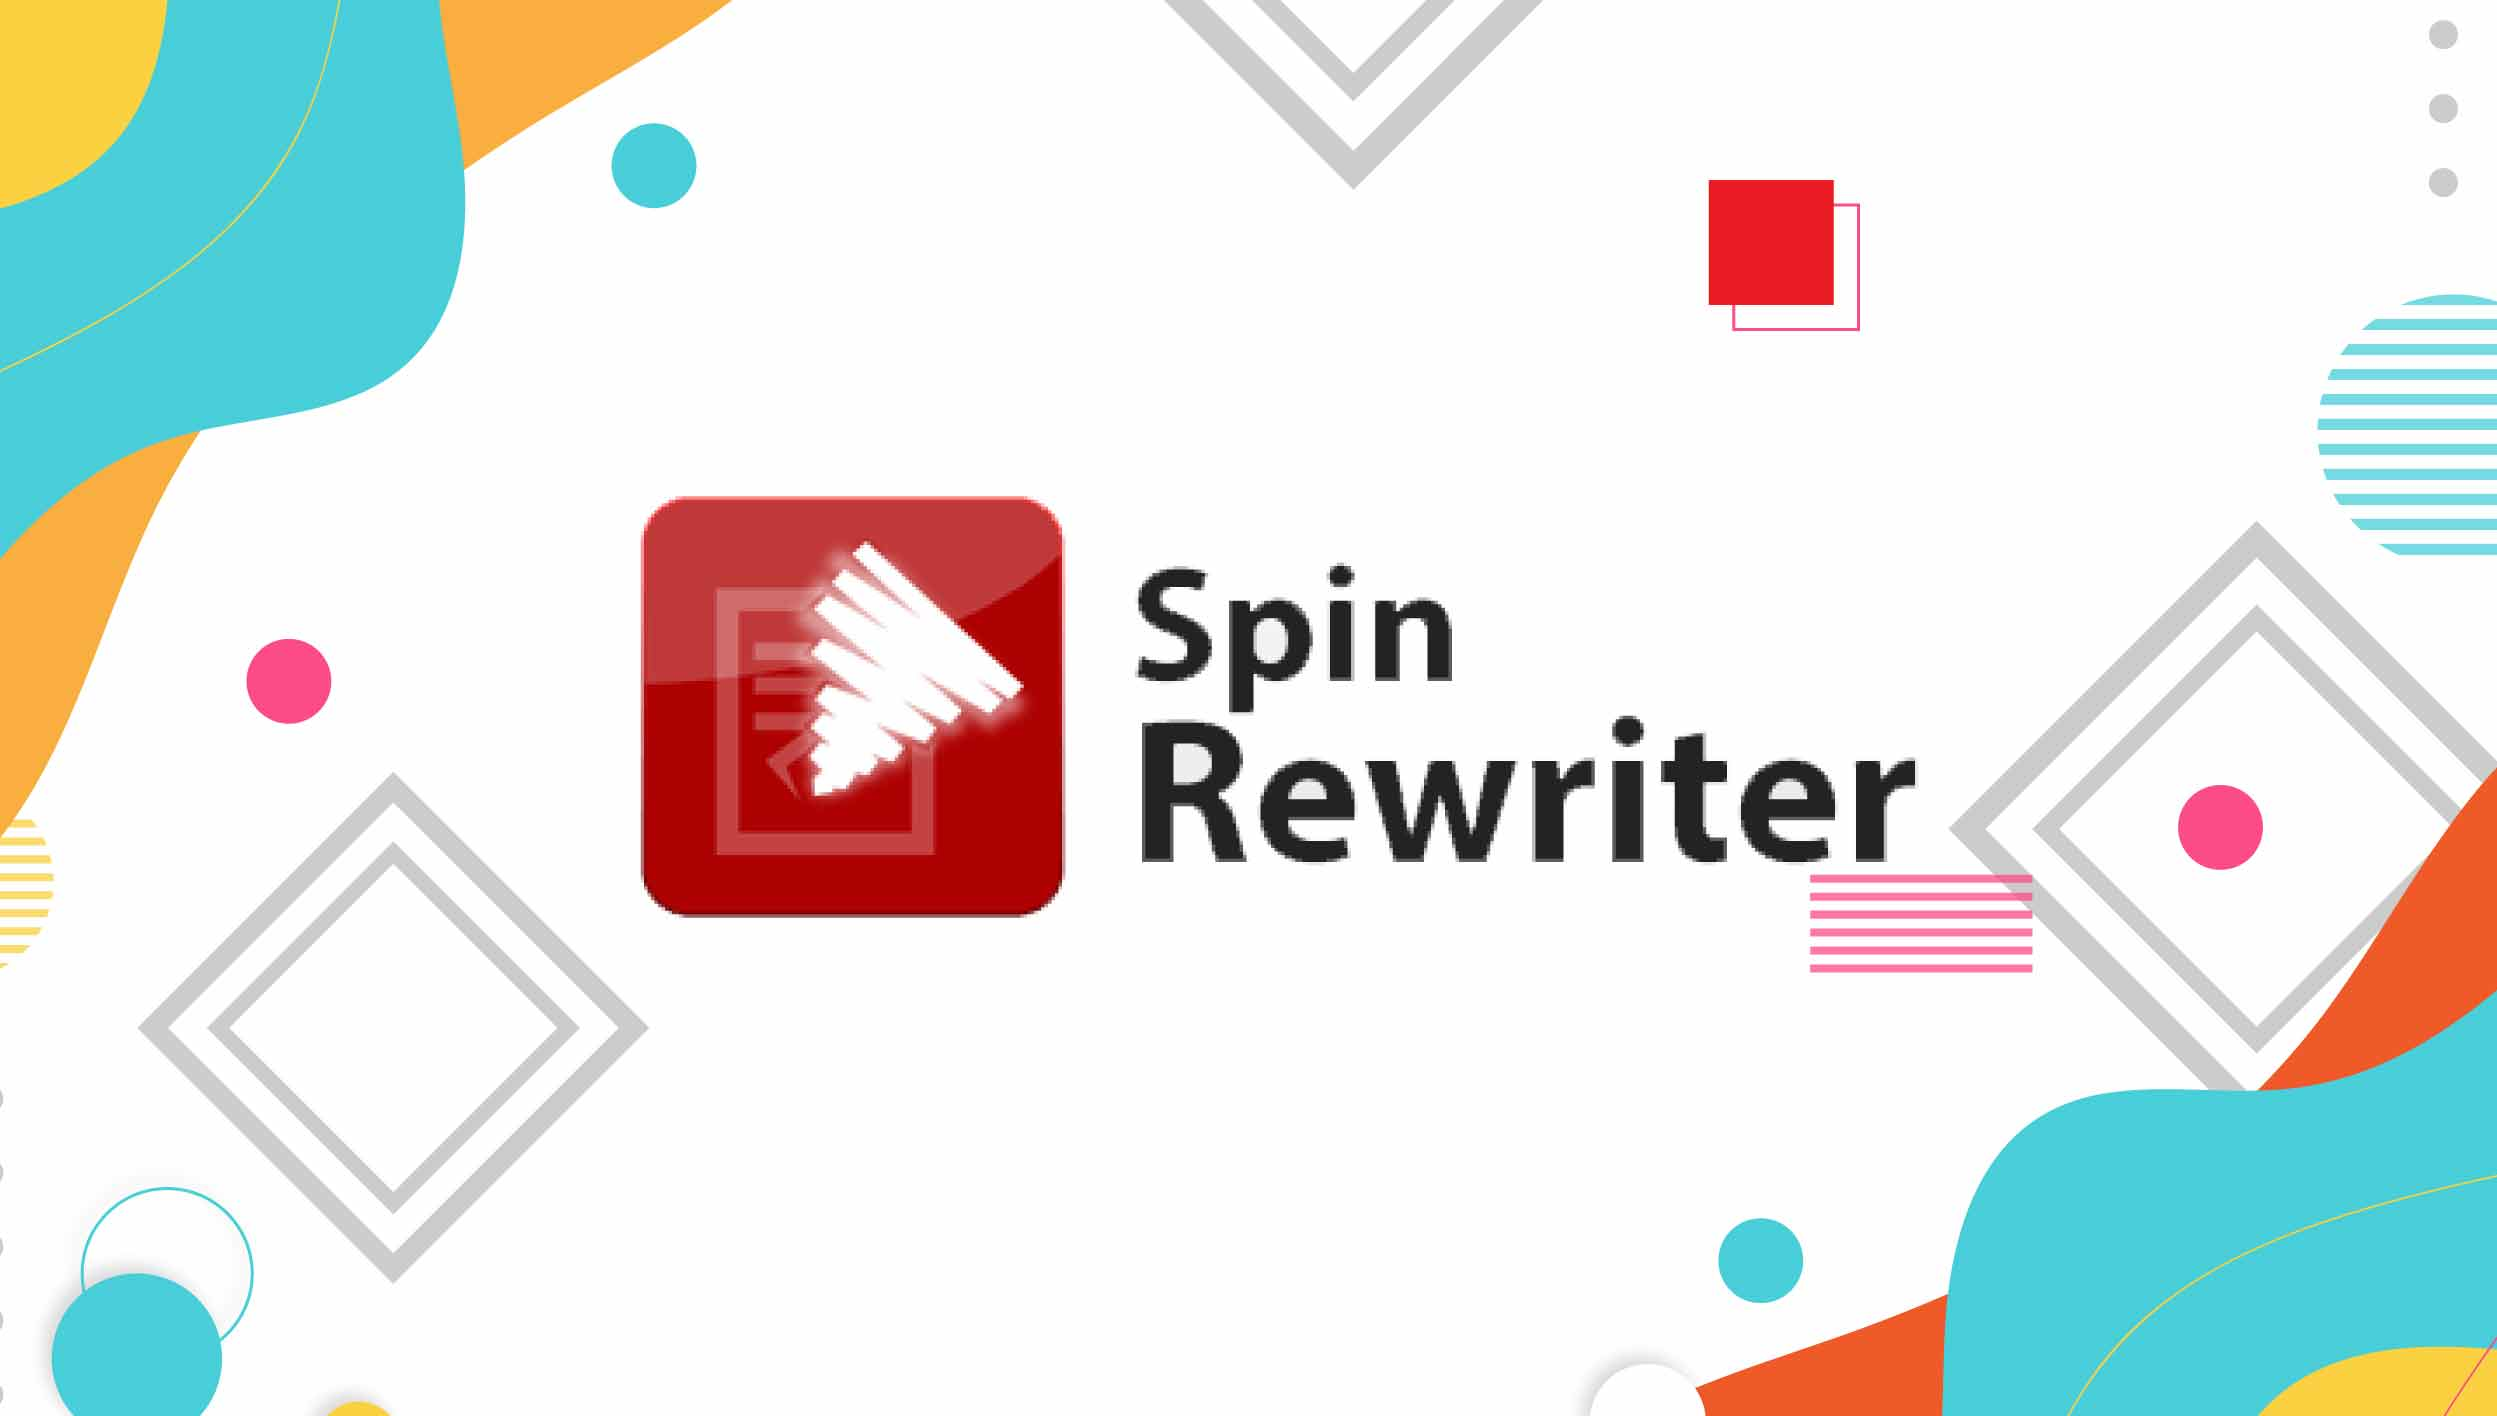 spin rewriter group buy